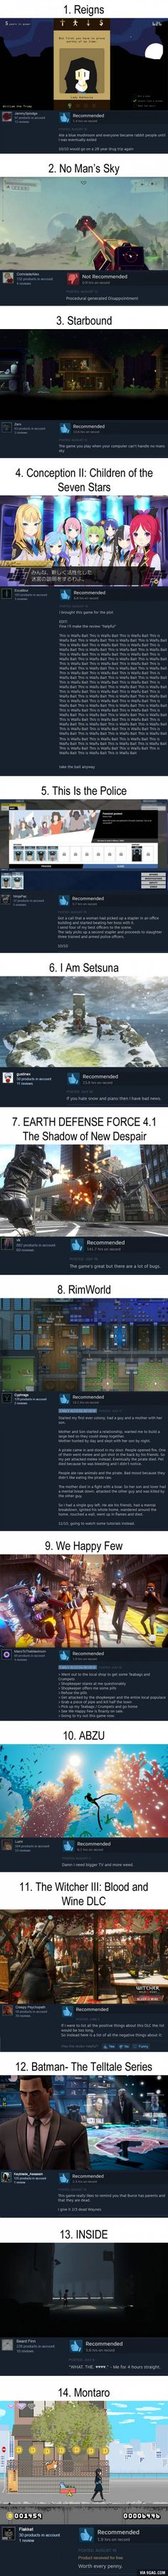 14 Funny Steam Reviews: Summer 2016 Games Edition